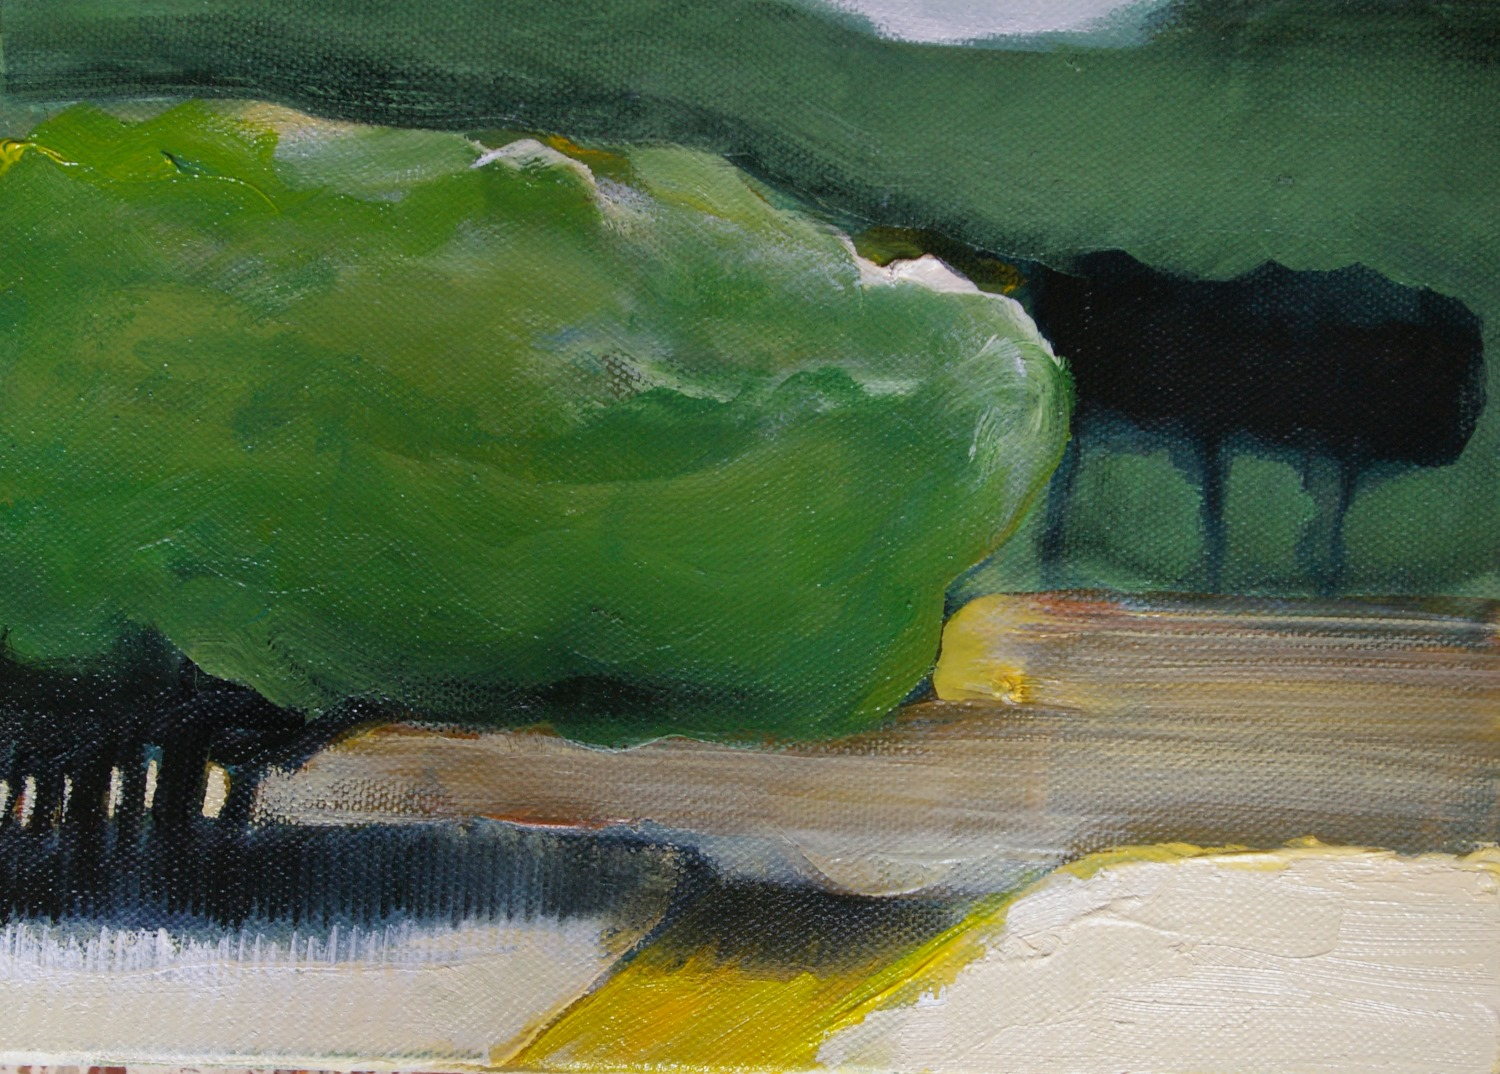 Memories of a walk 4: Picnic Tree  - Caitriona O'Leary